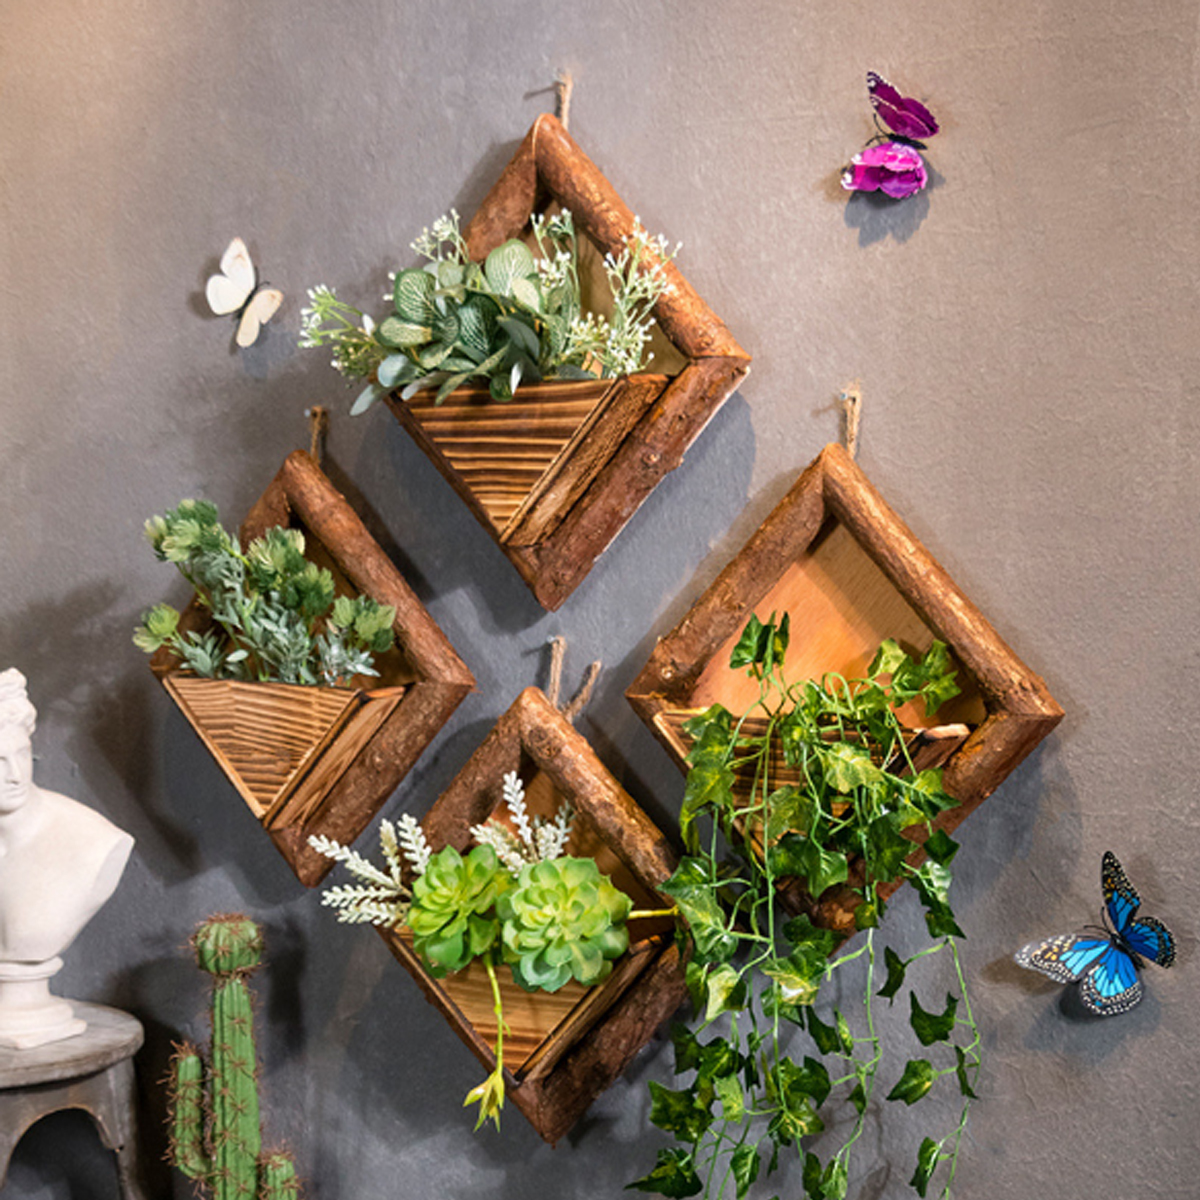 1pc DIY Wooden Wall Mounted Shelf Hanging Rack Artificial Flower Plant Display Stand Storage Decor for Home Shop Cafe